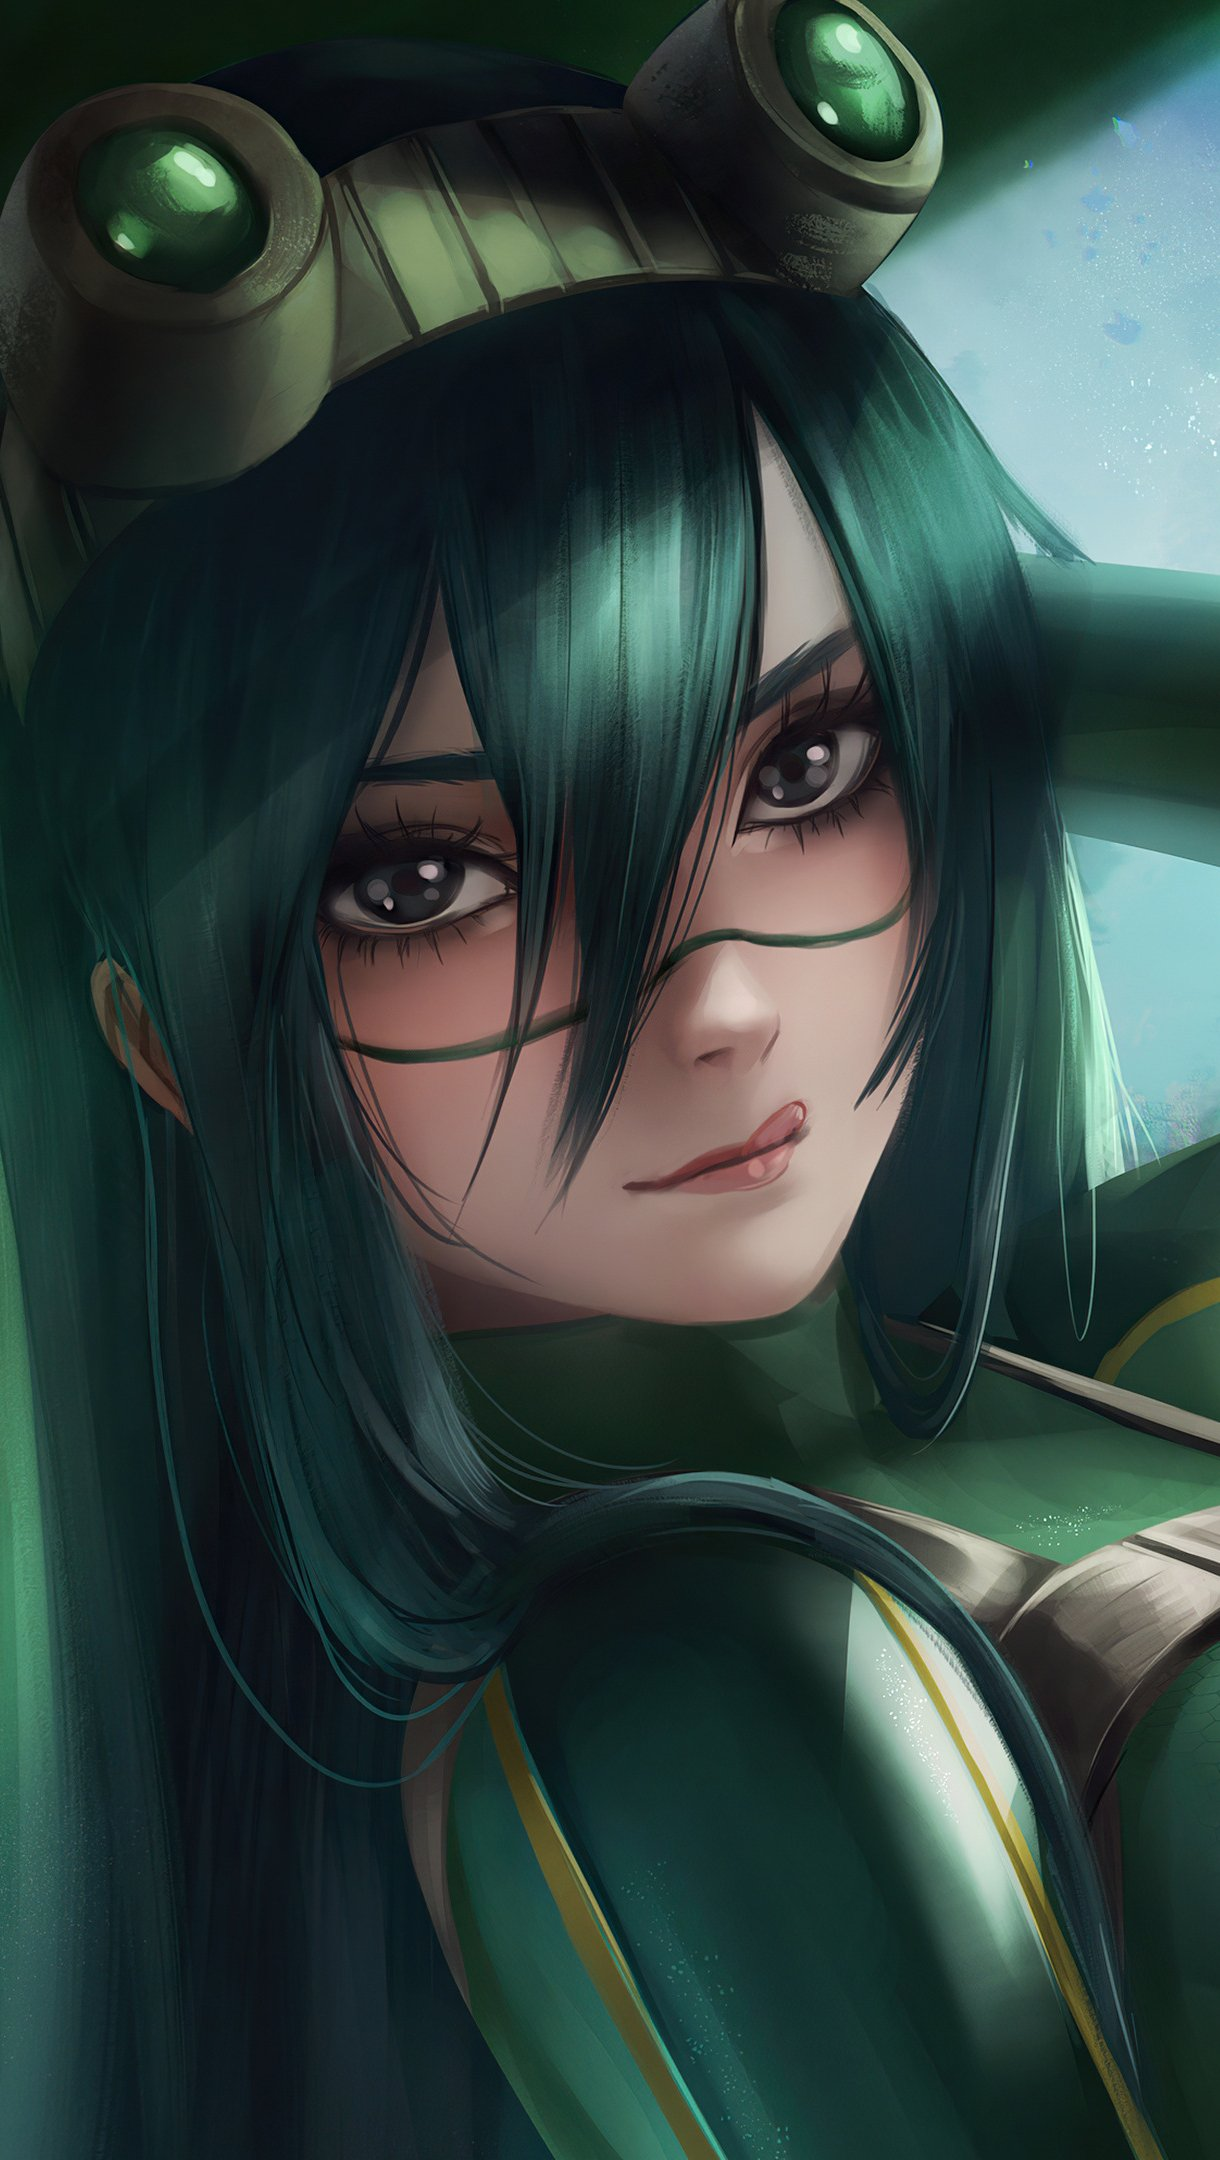 My hero academy wallpapers offefeatures: Green Anime Wallpaper My Hero Academia - Anime Wallpaper HD